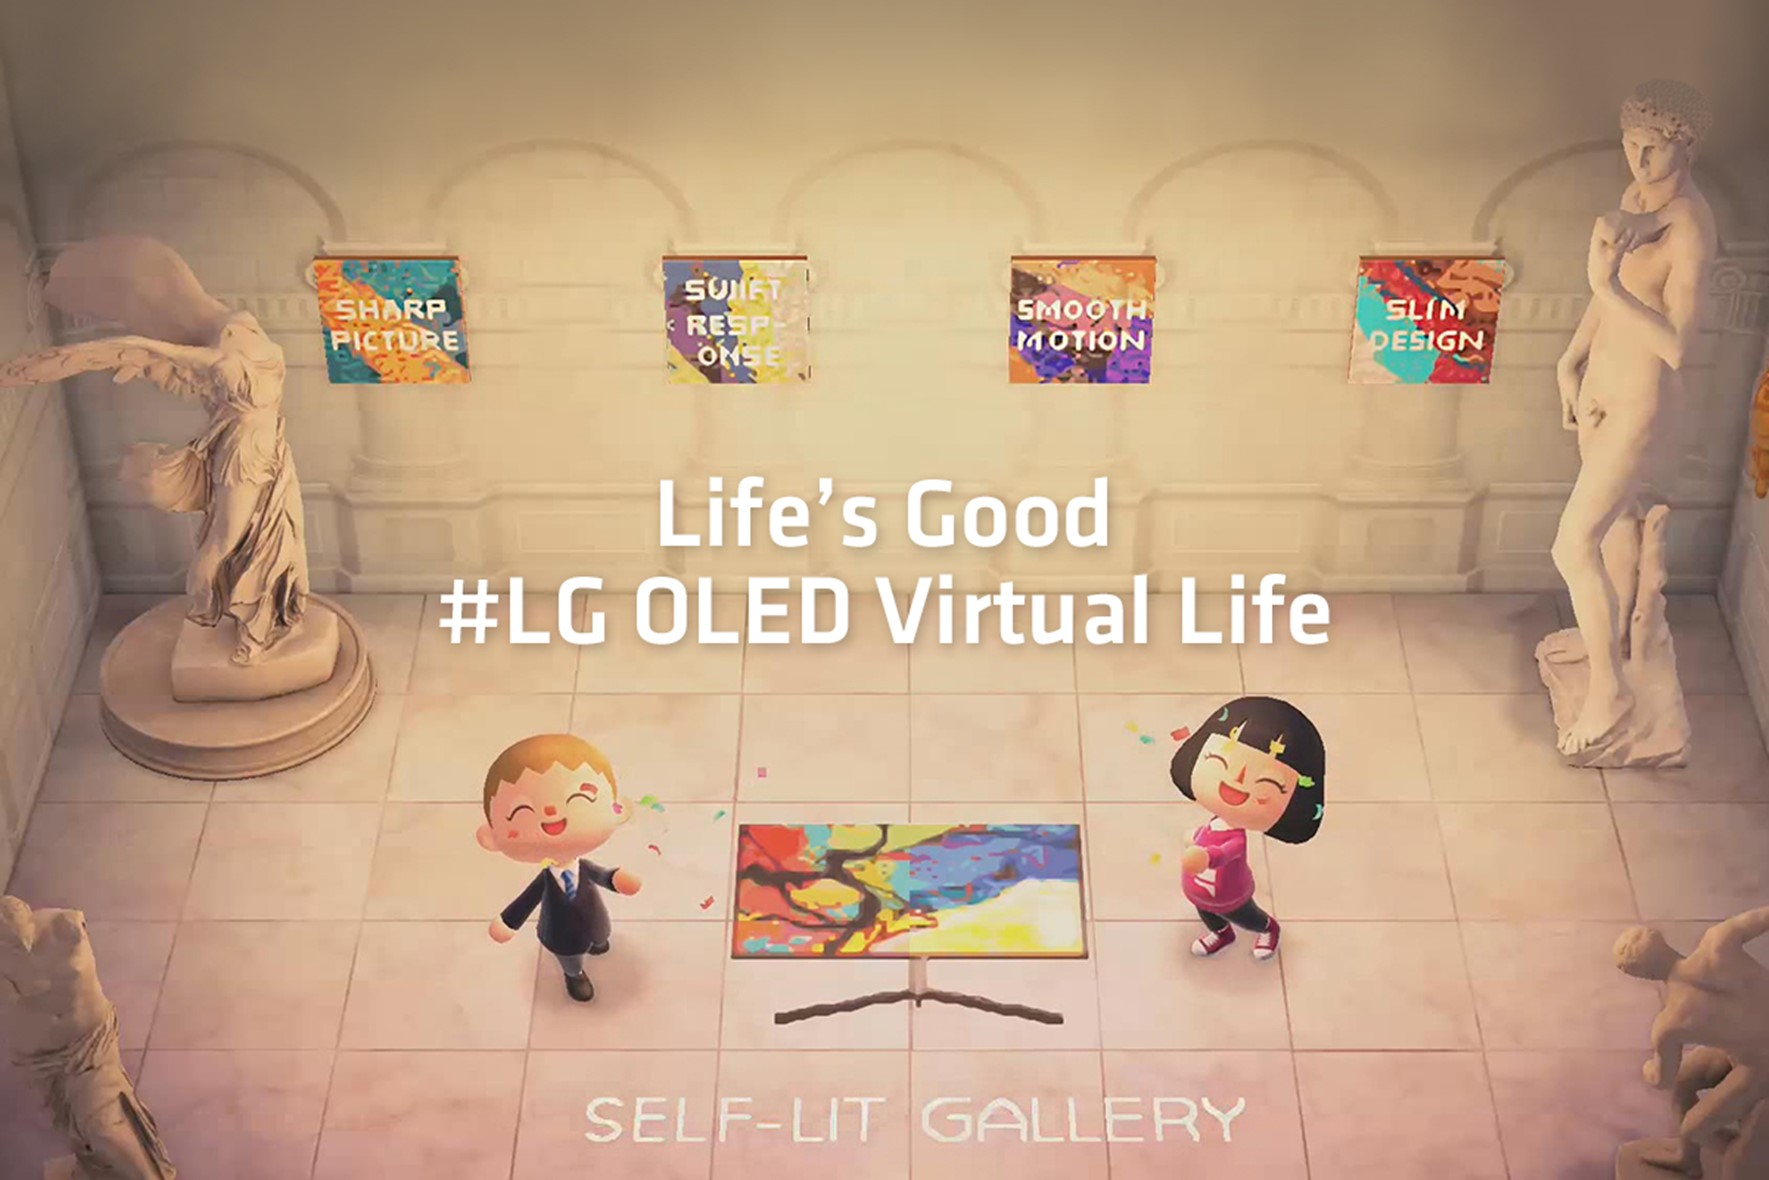 LG OLED TV displayed in a 'self-lit gallery' within popular video game 'Animal Crossing,' with sculptures in each corner and two cute player avatars posing.